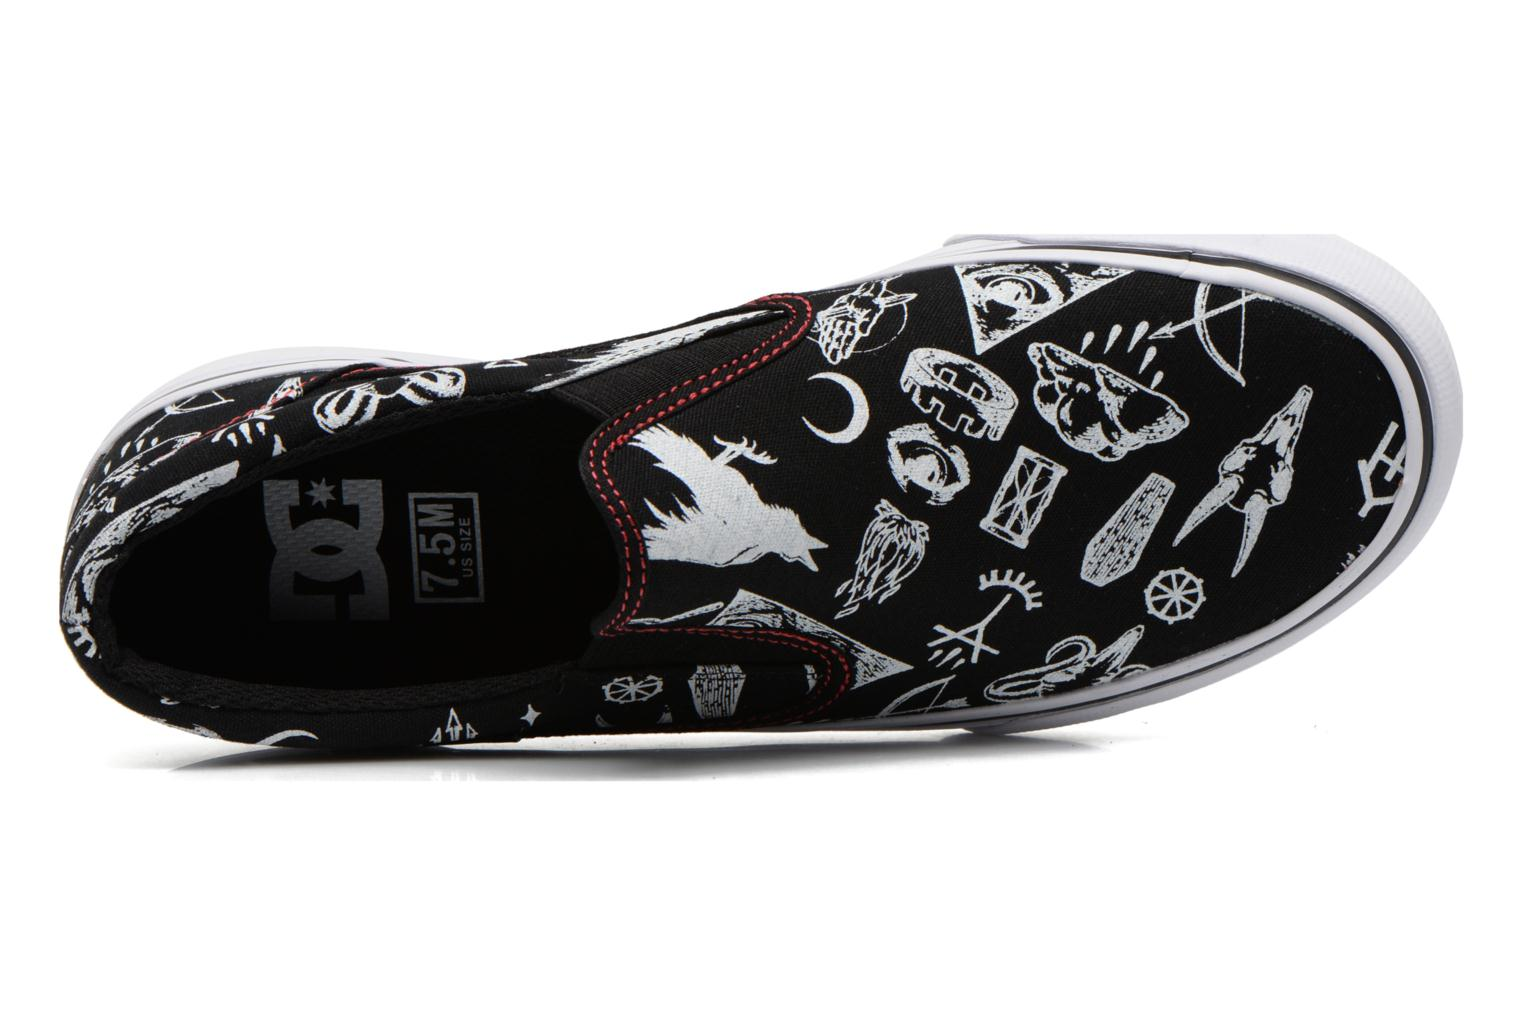 Trase Slip-On SP Black/Red Print